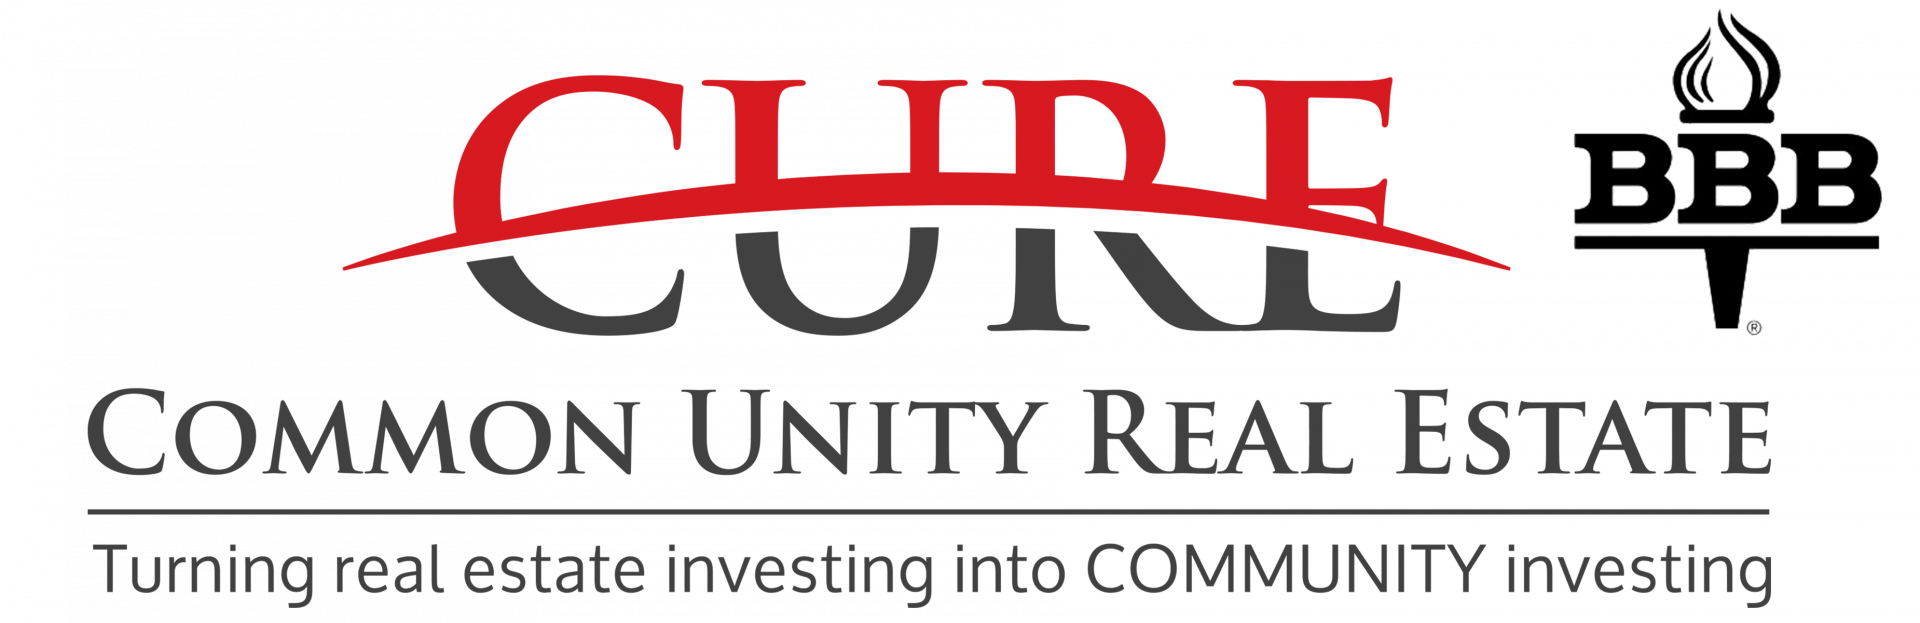 Common Unity Real Estate logo